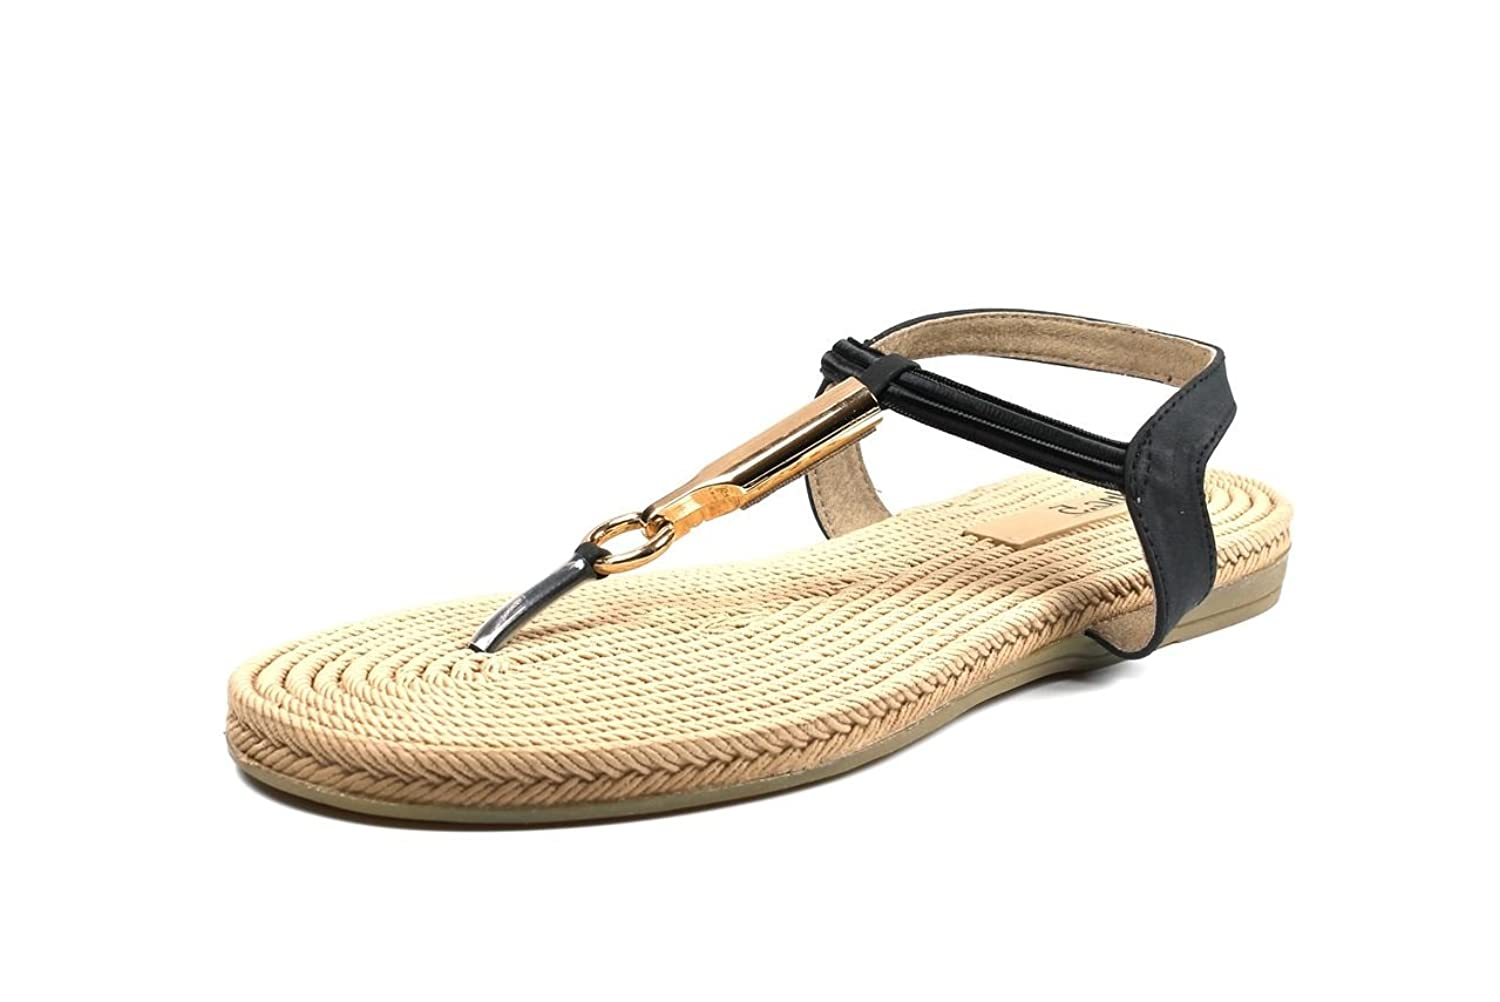 Inc.5 Women's Synthetic Sandals at amazon